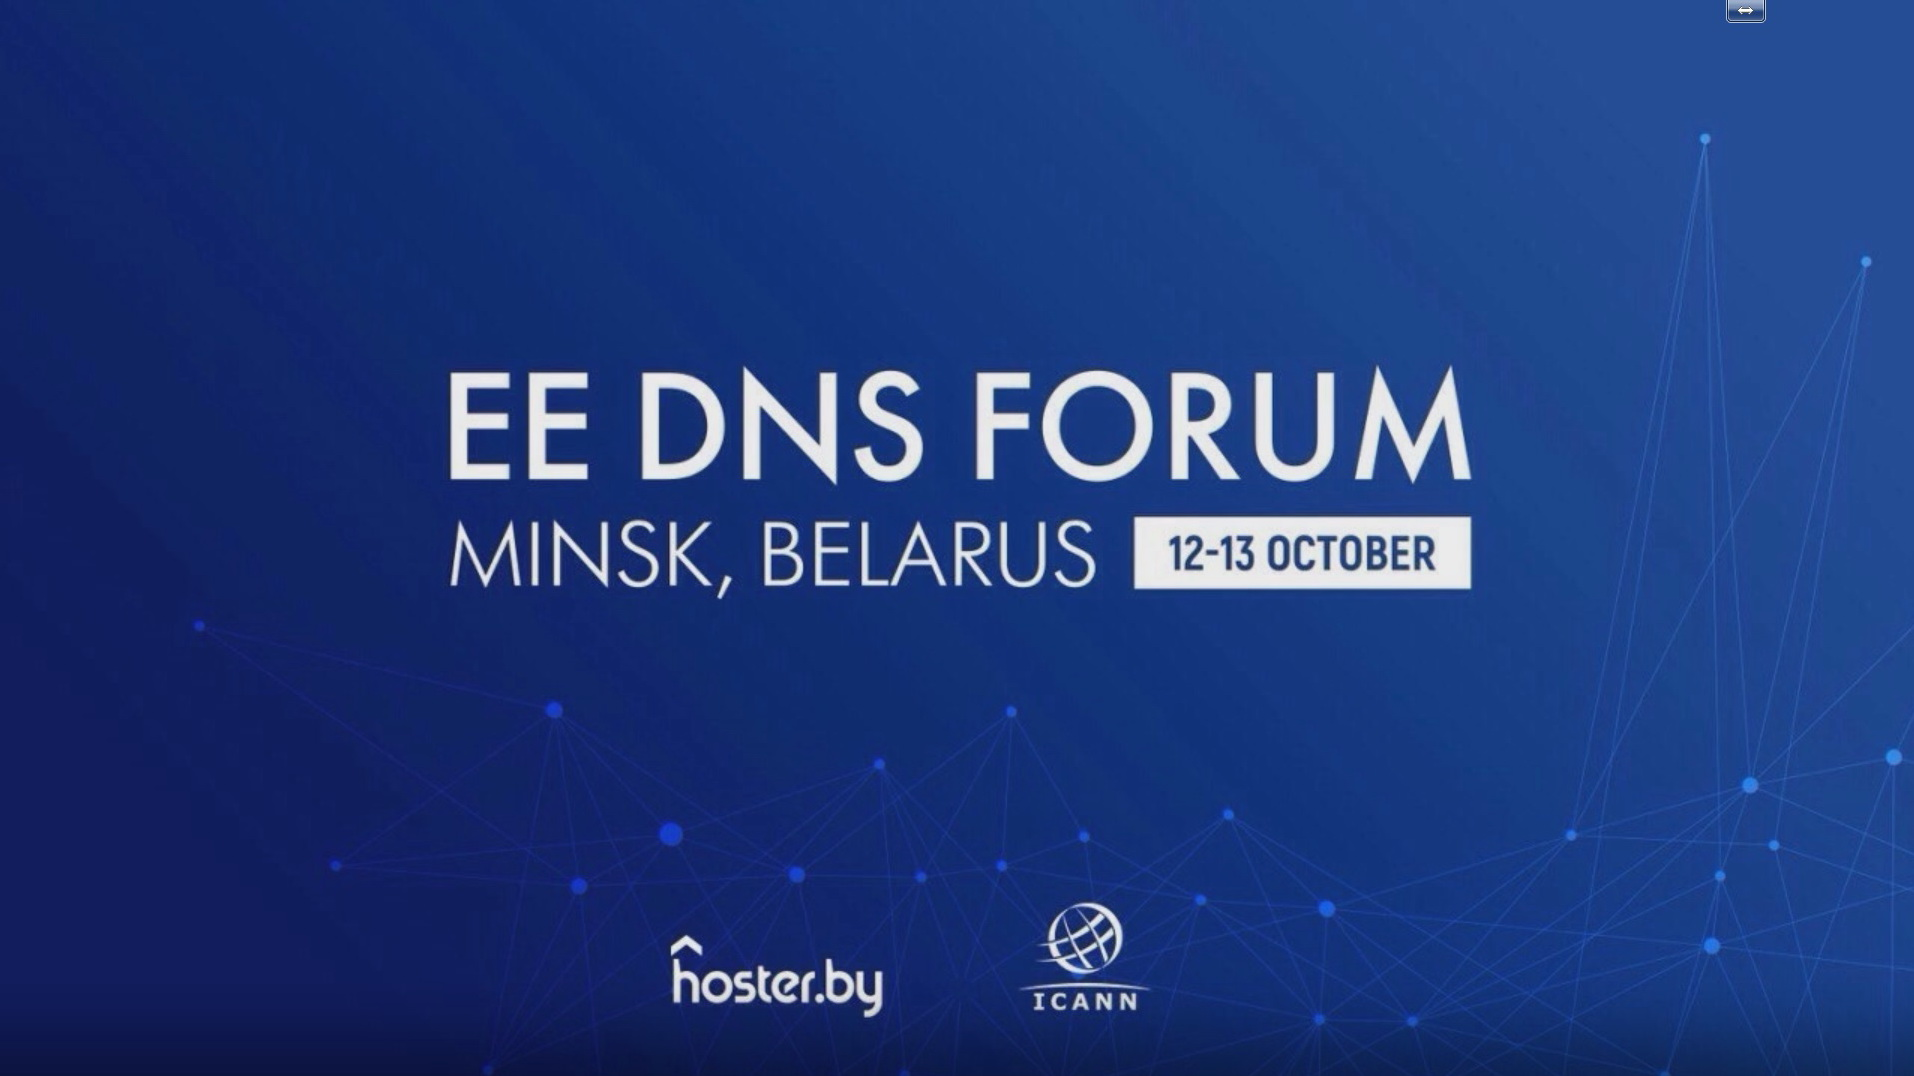 EE DNS Forum by ICANN in Minsk, Belarus